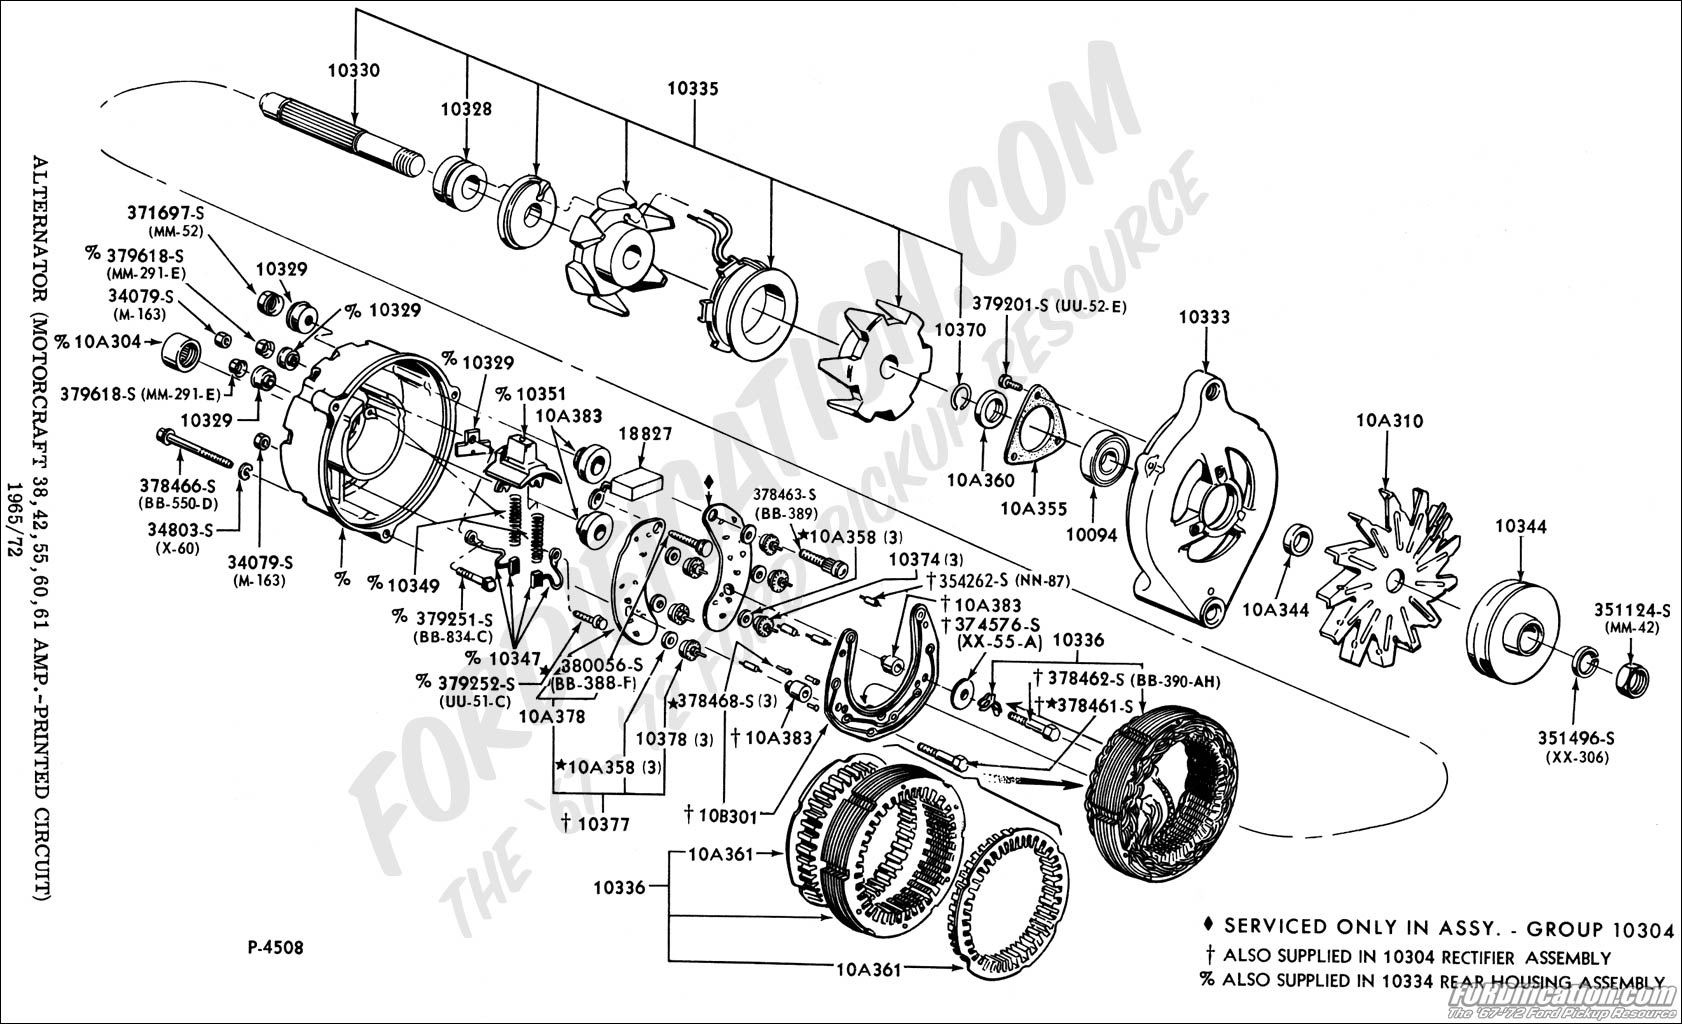 Ford Alternator Wiring Diagram on 1969 camaro windshield wiper motor switch